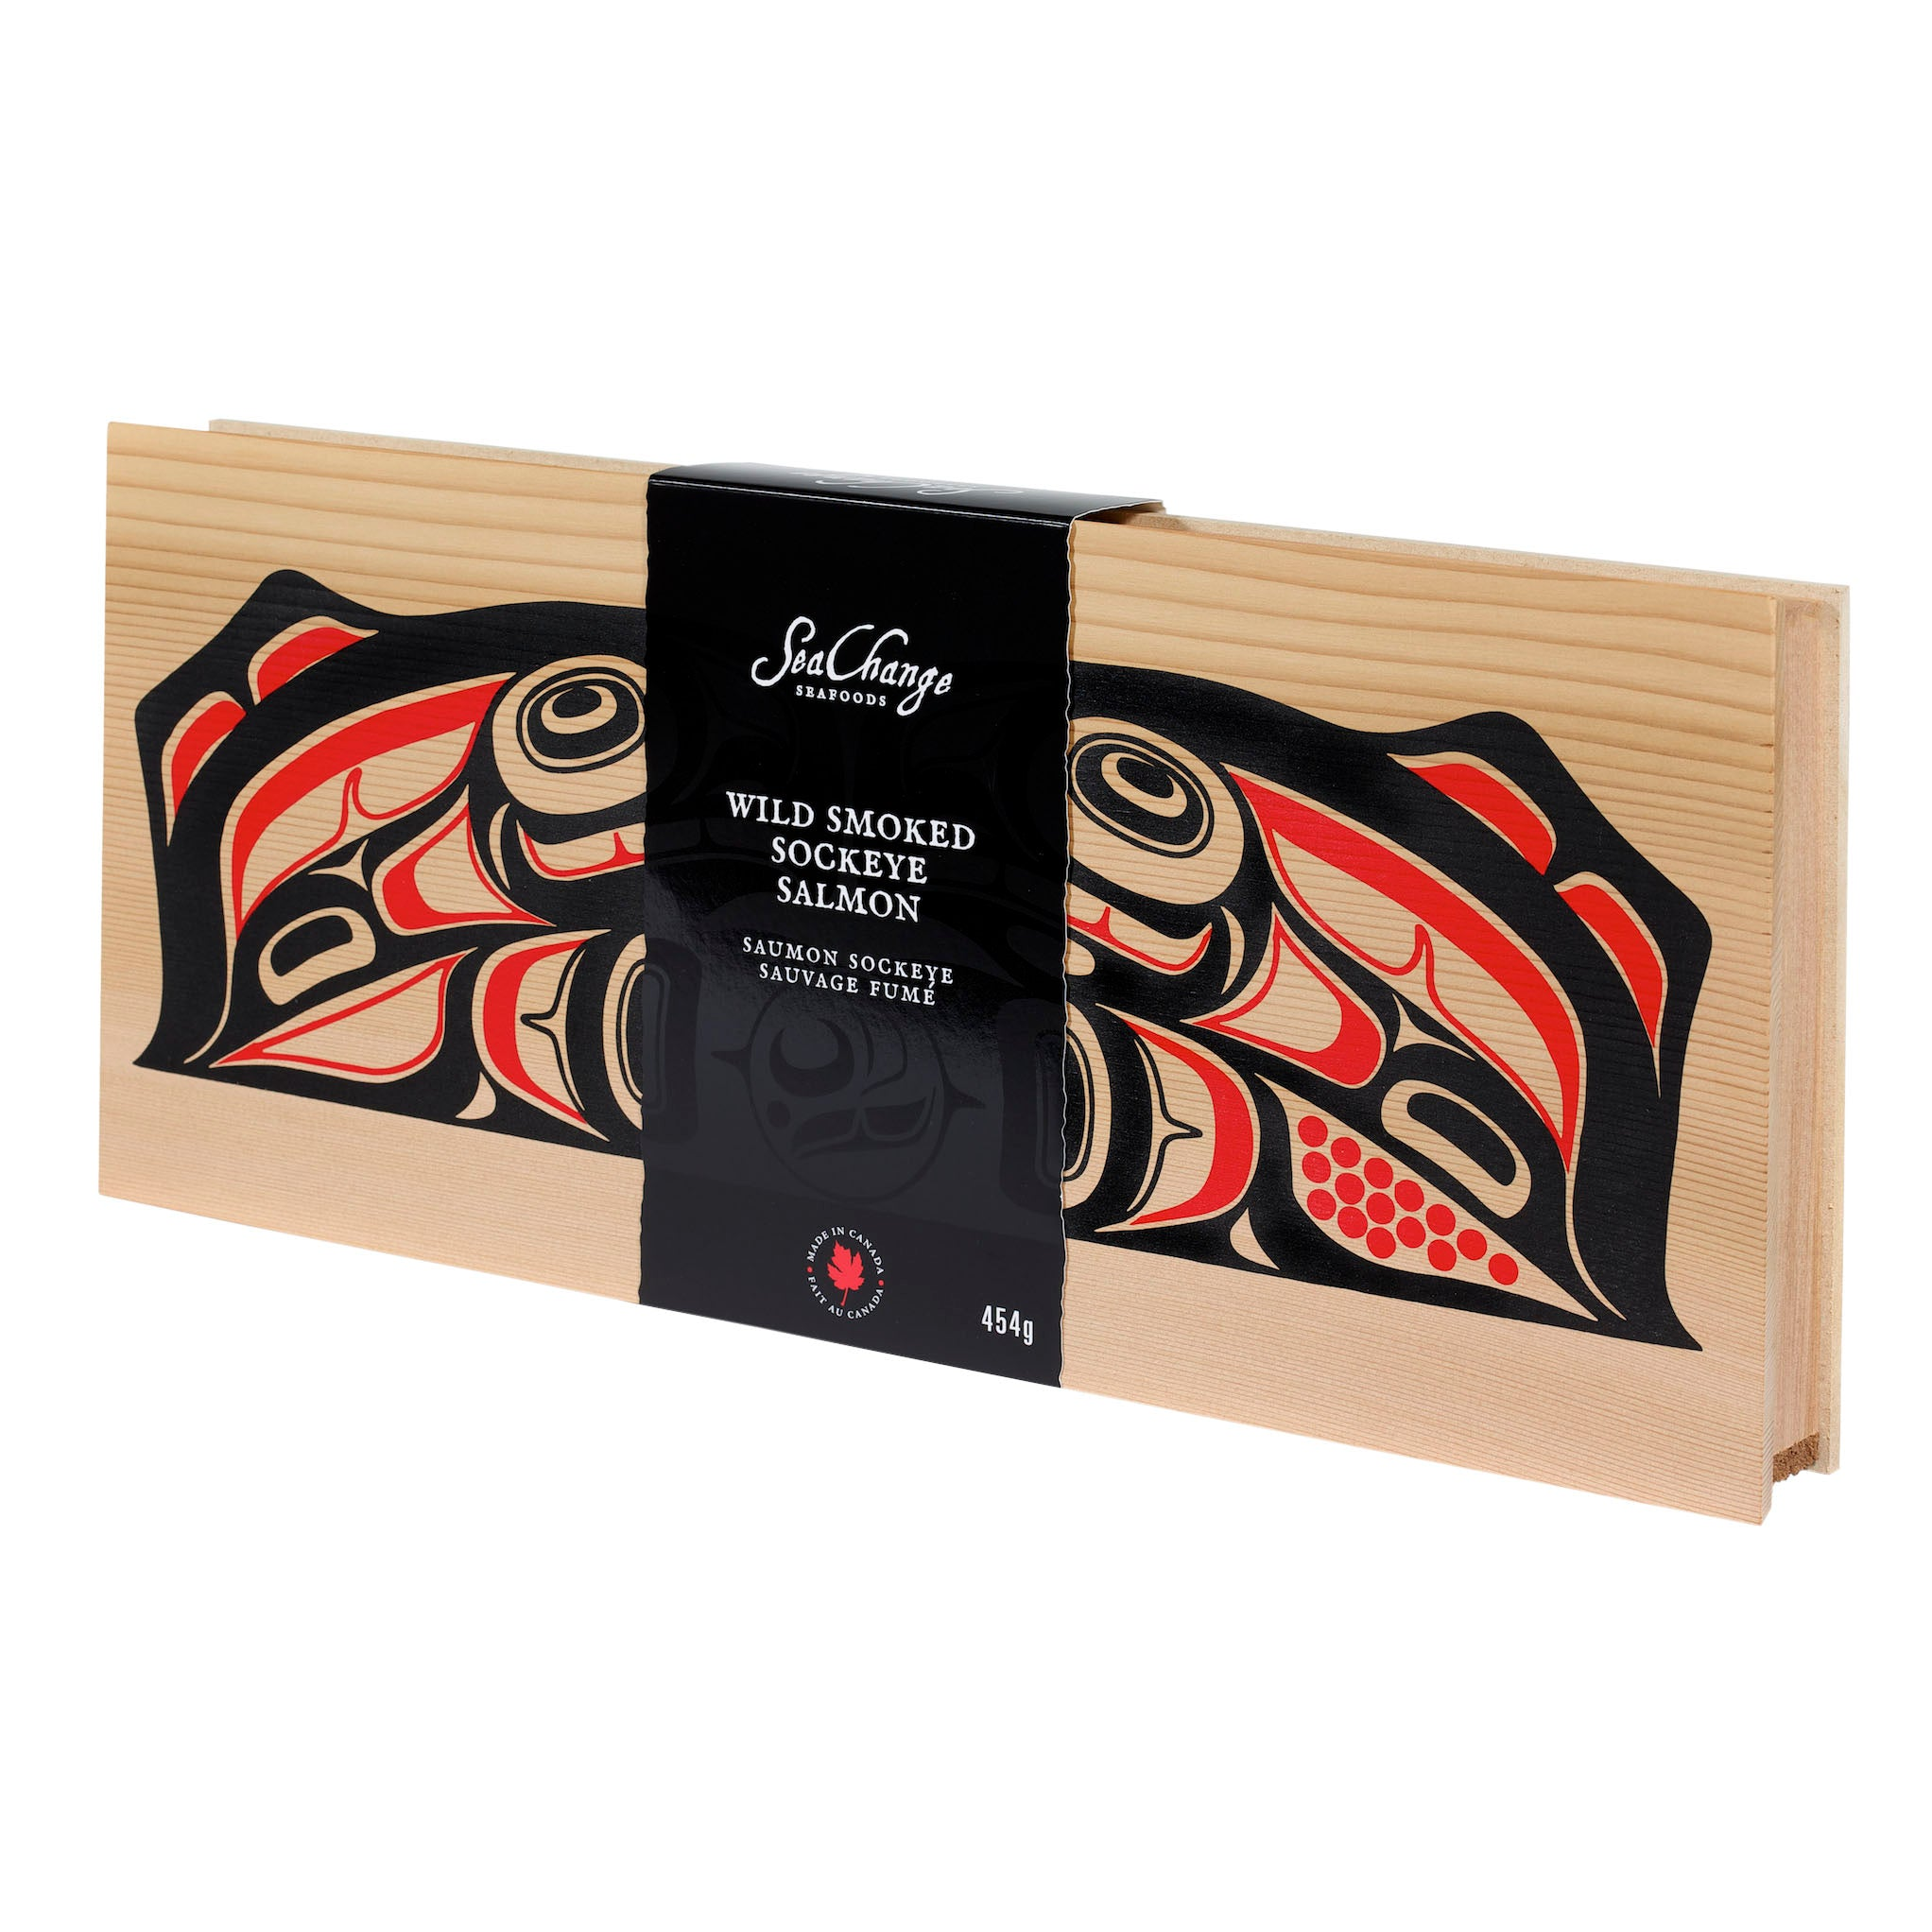 Smoked Sockeye Salmon in Cedar Box Gift of Canada